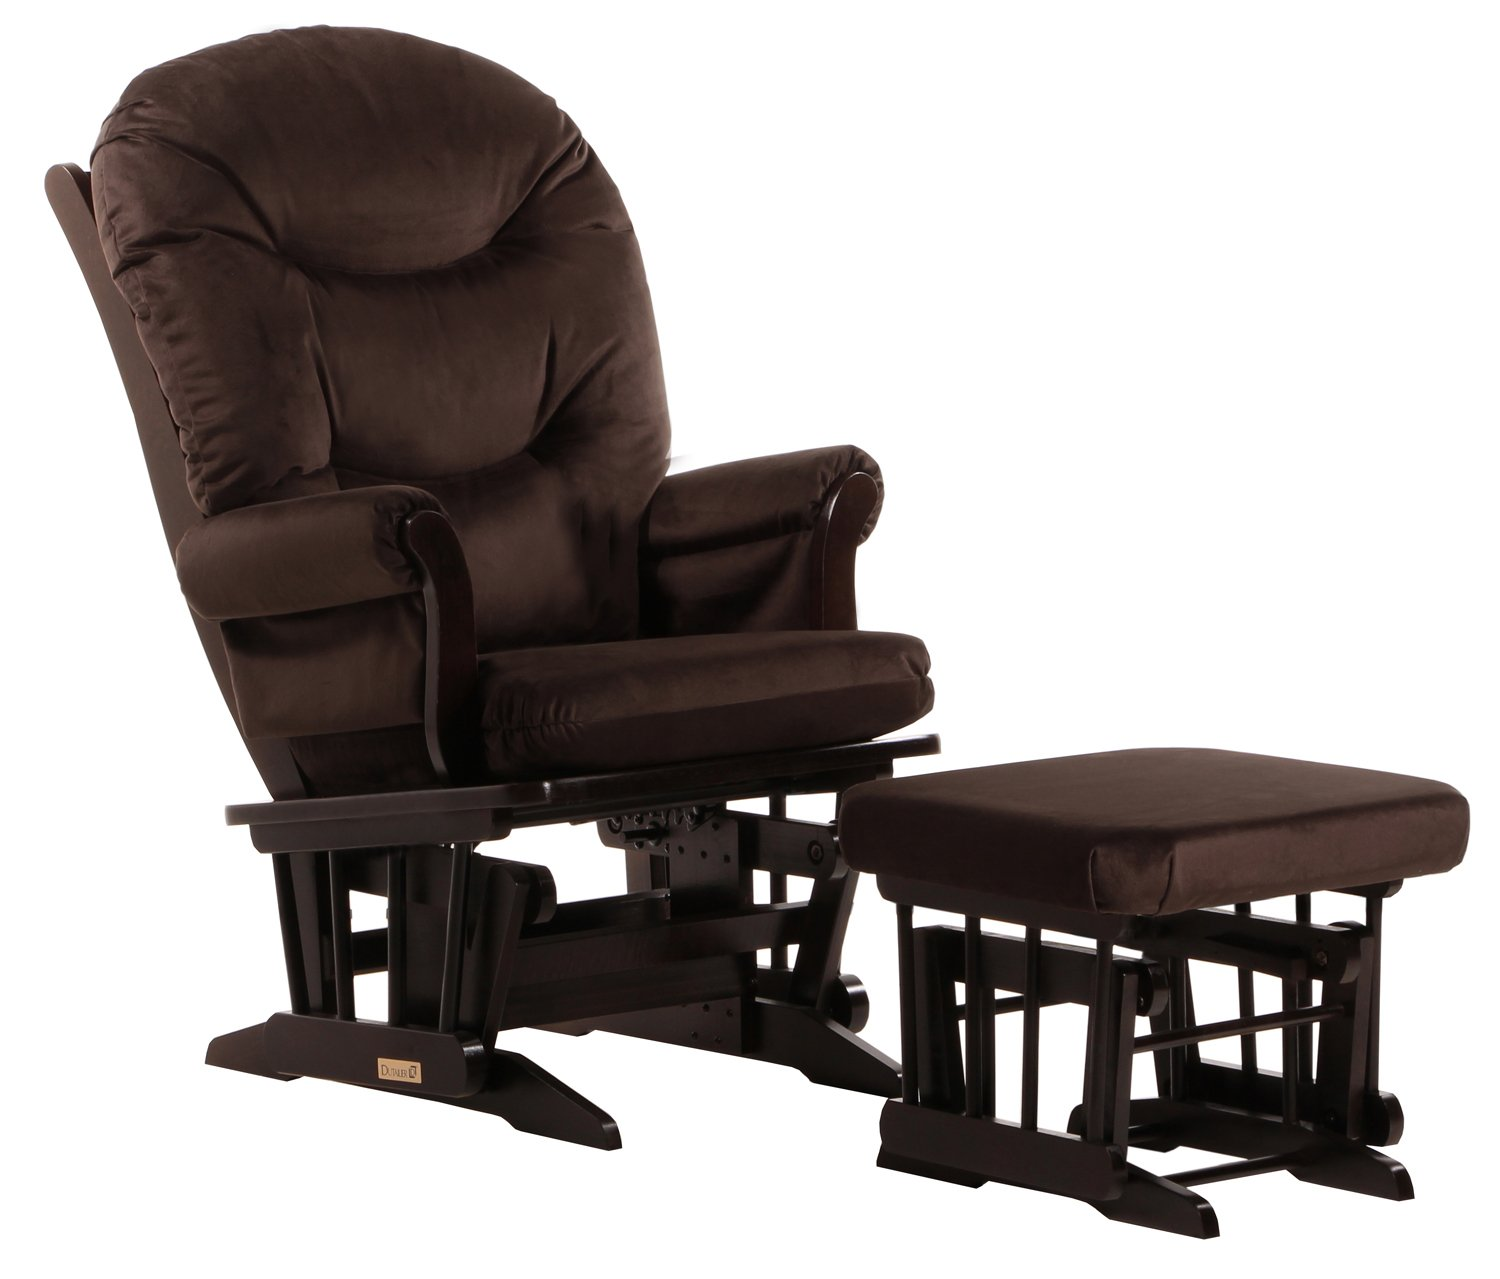 Dutailier Sleigh Glider and Ottoman Combo, Espresso/Chocolate C00-61A-69-3095